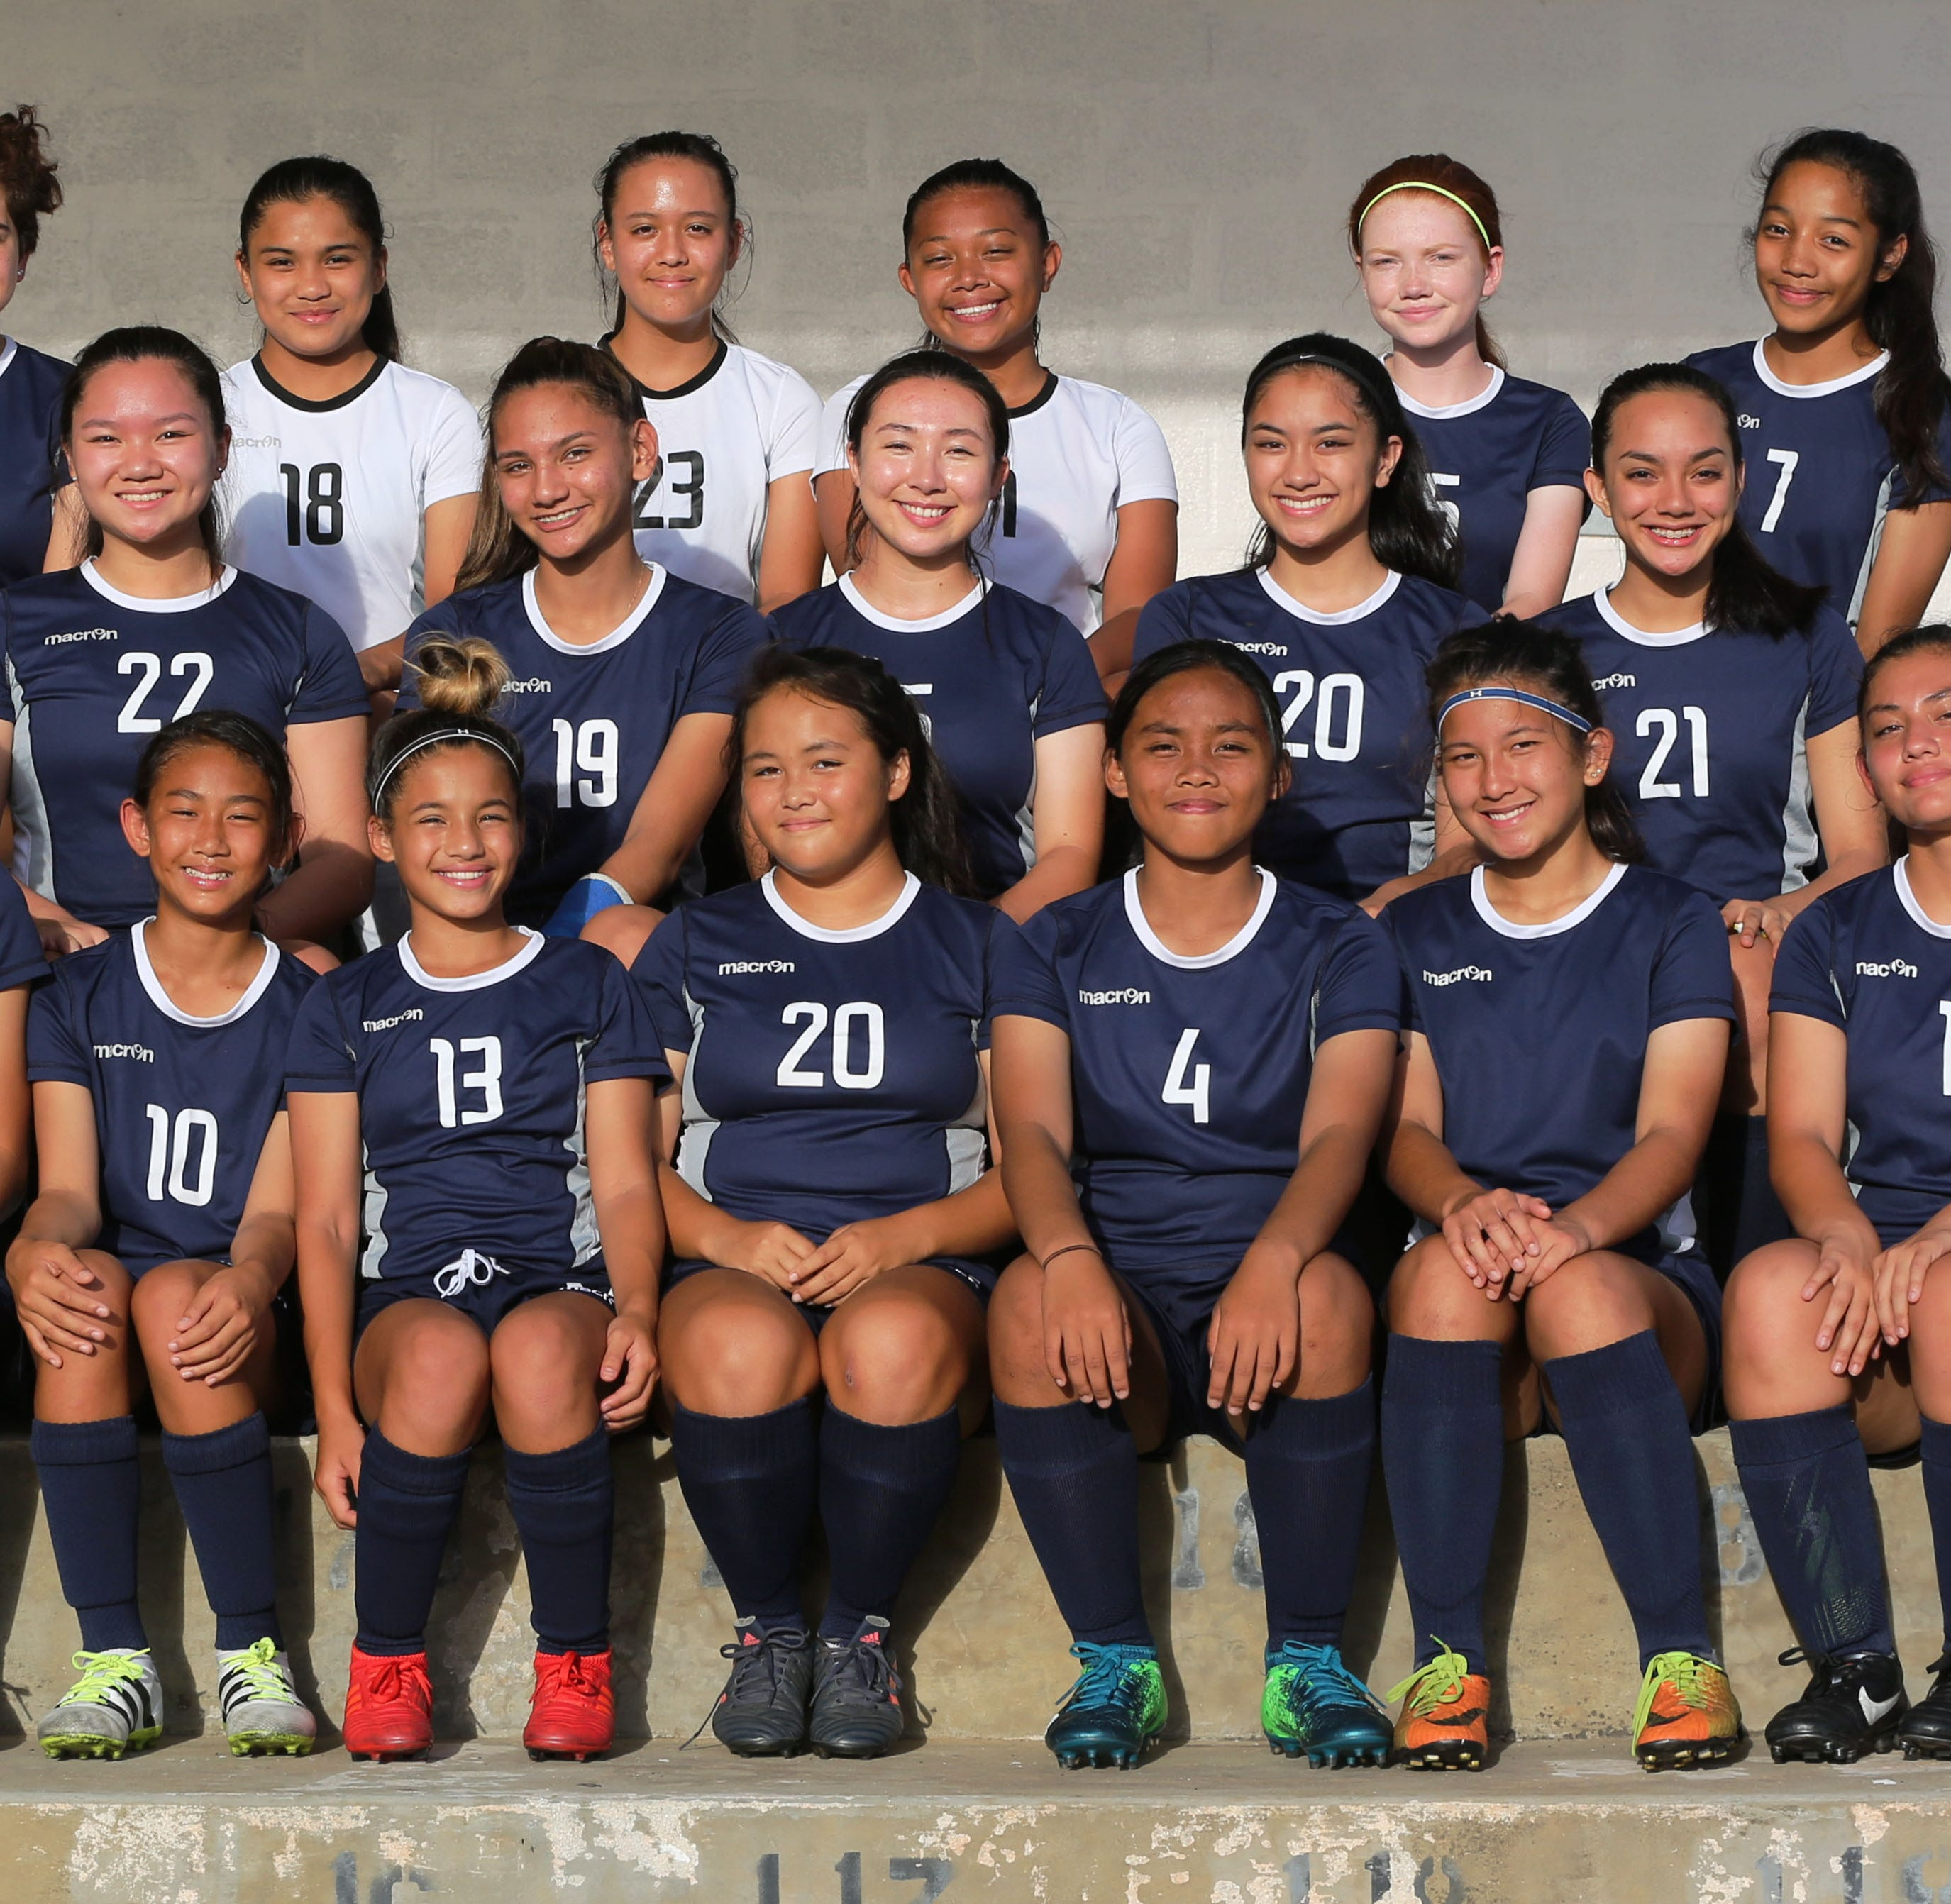 U15 soccer team looks to build experience in Singapore